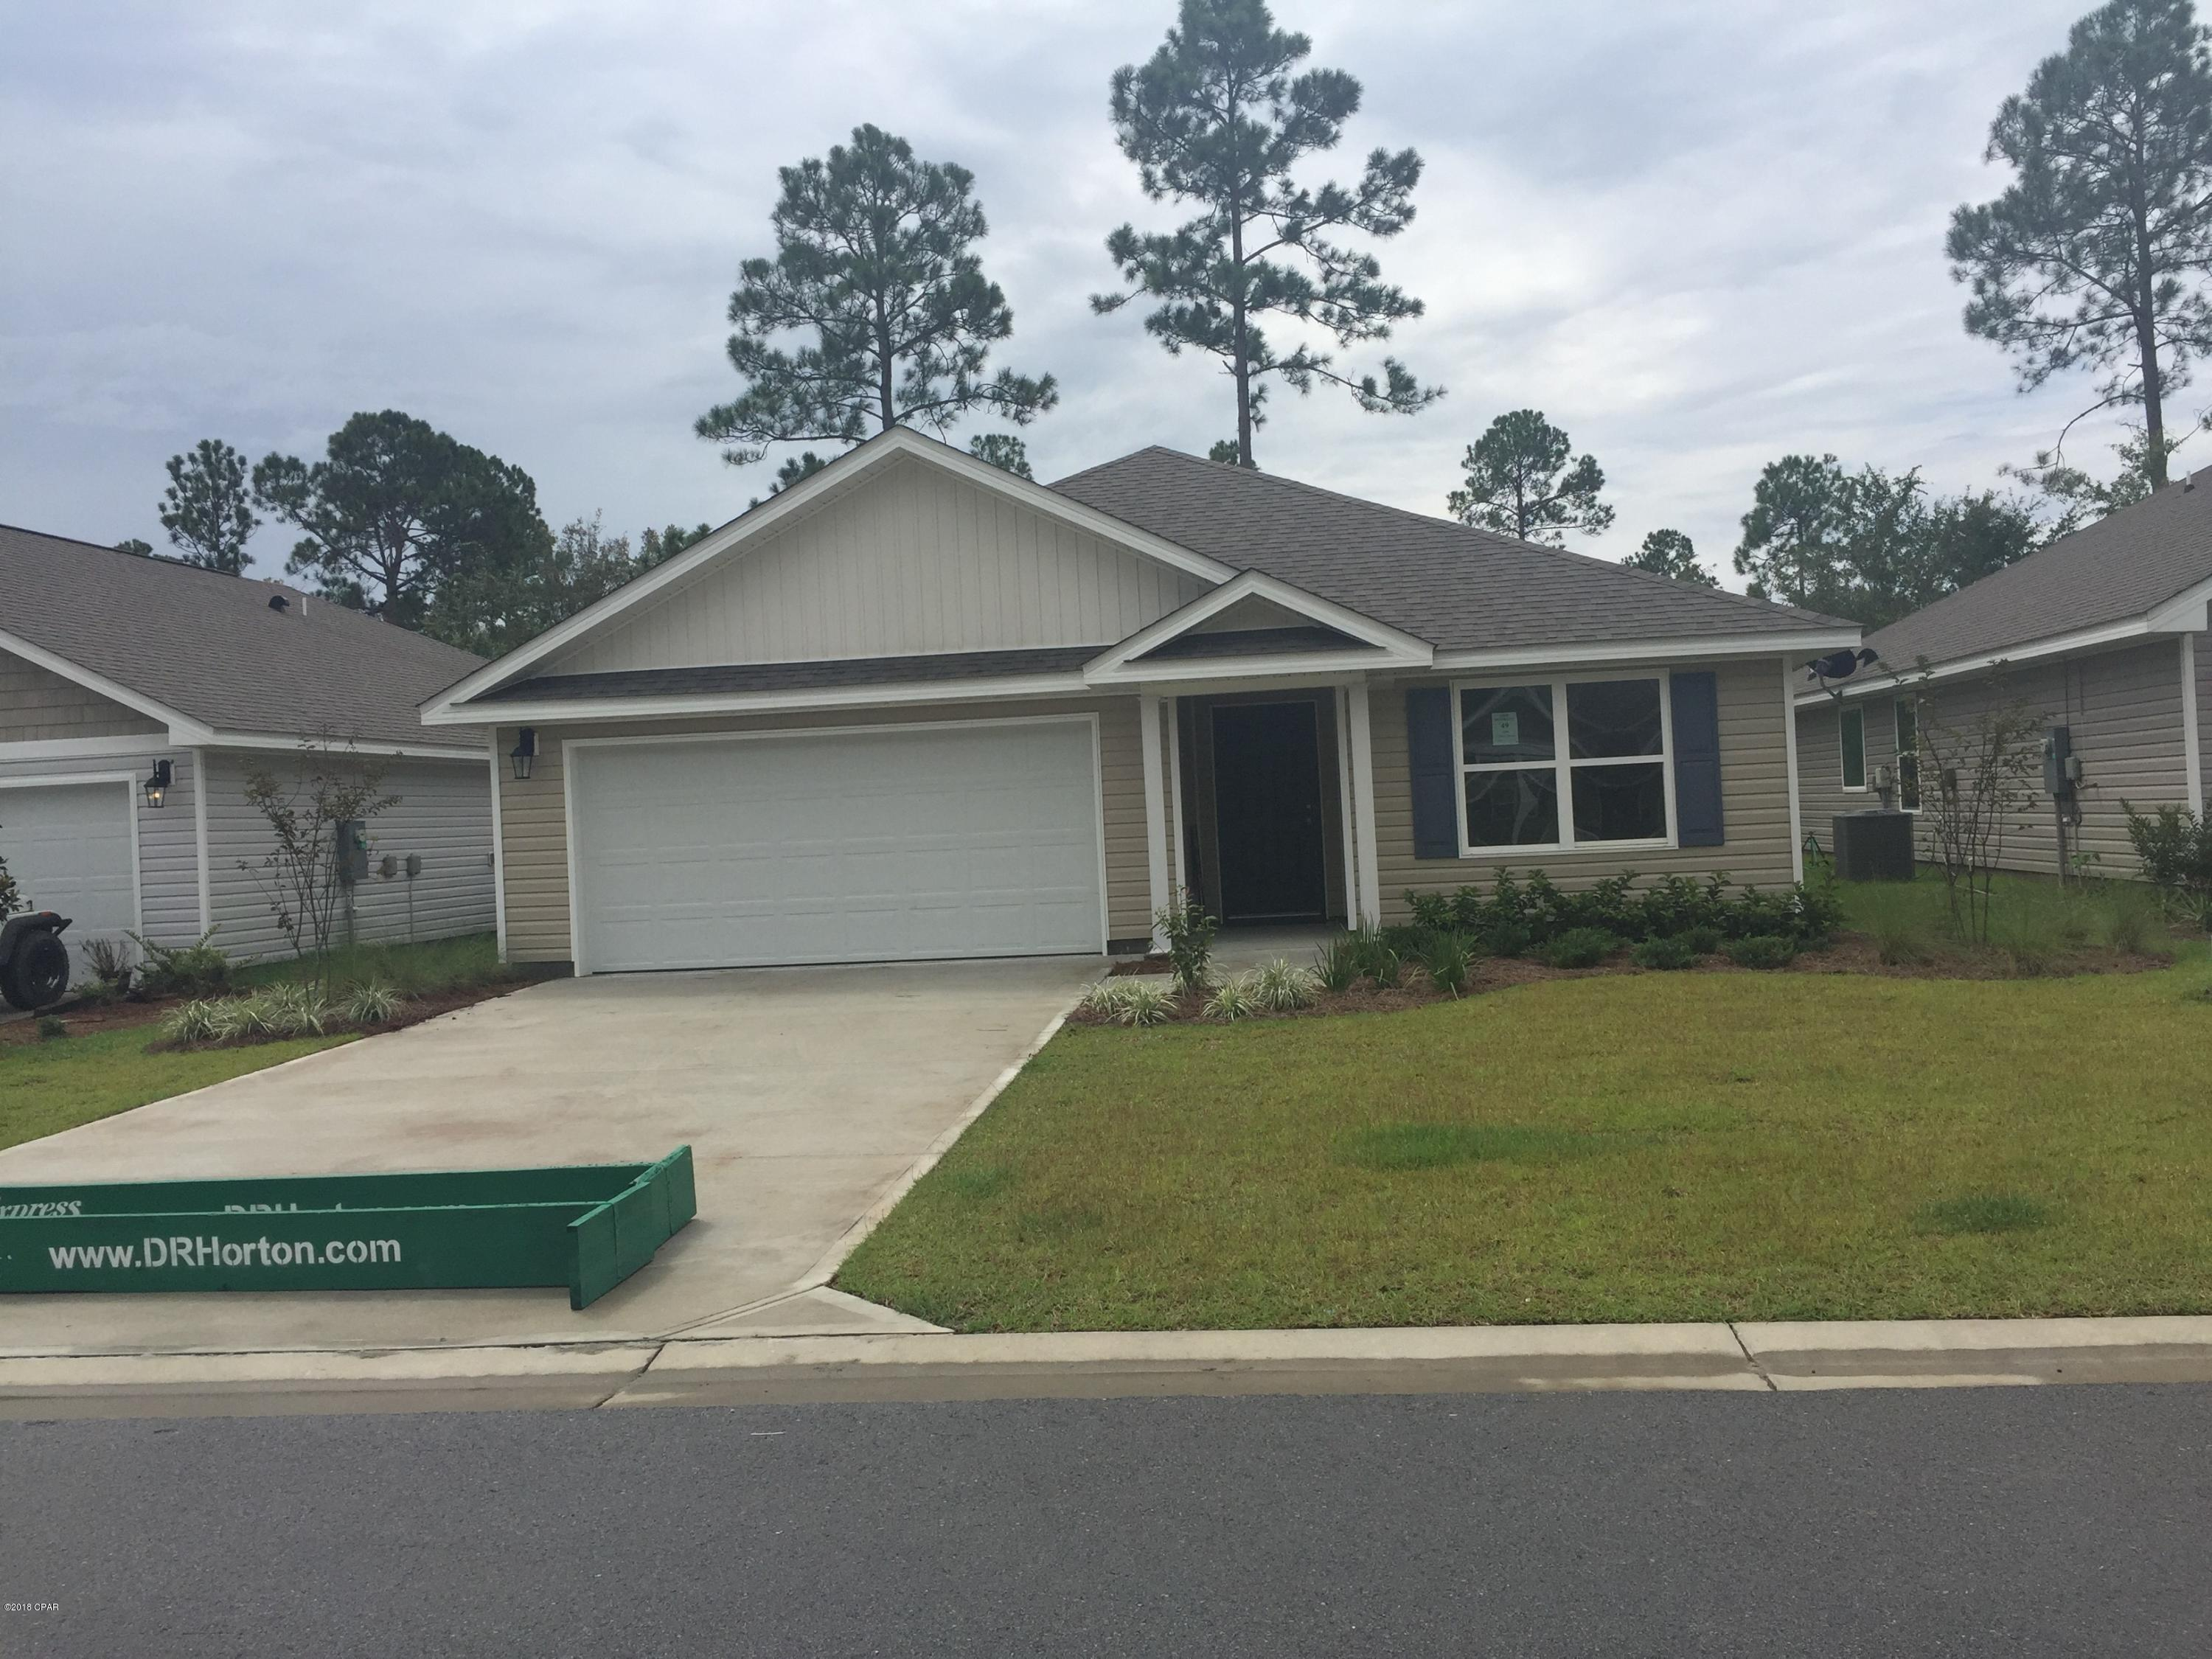 Photo of 131 CRENSHAW Street, LOT 49 Southport FL 32409